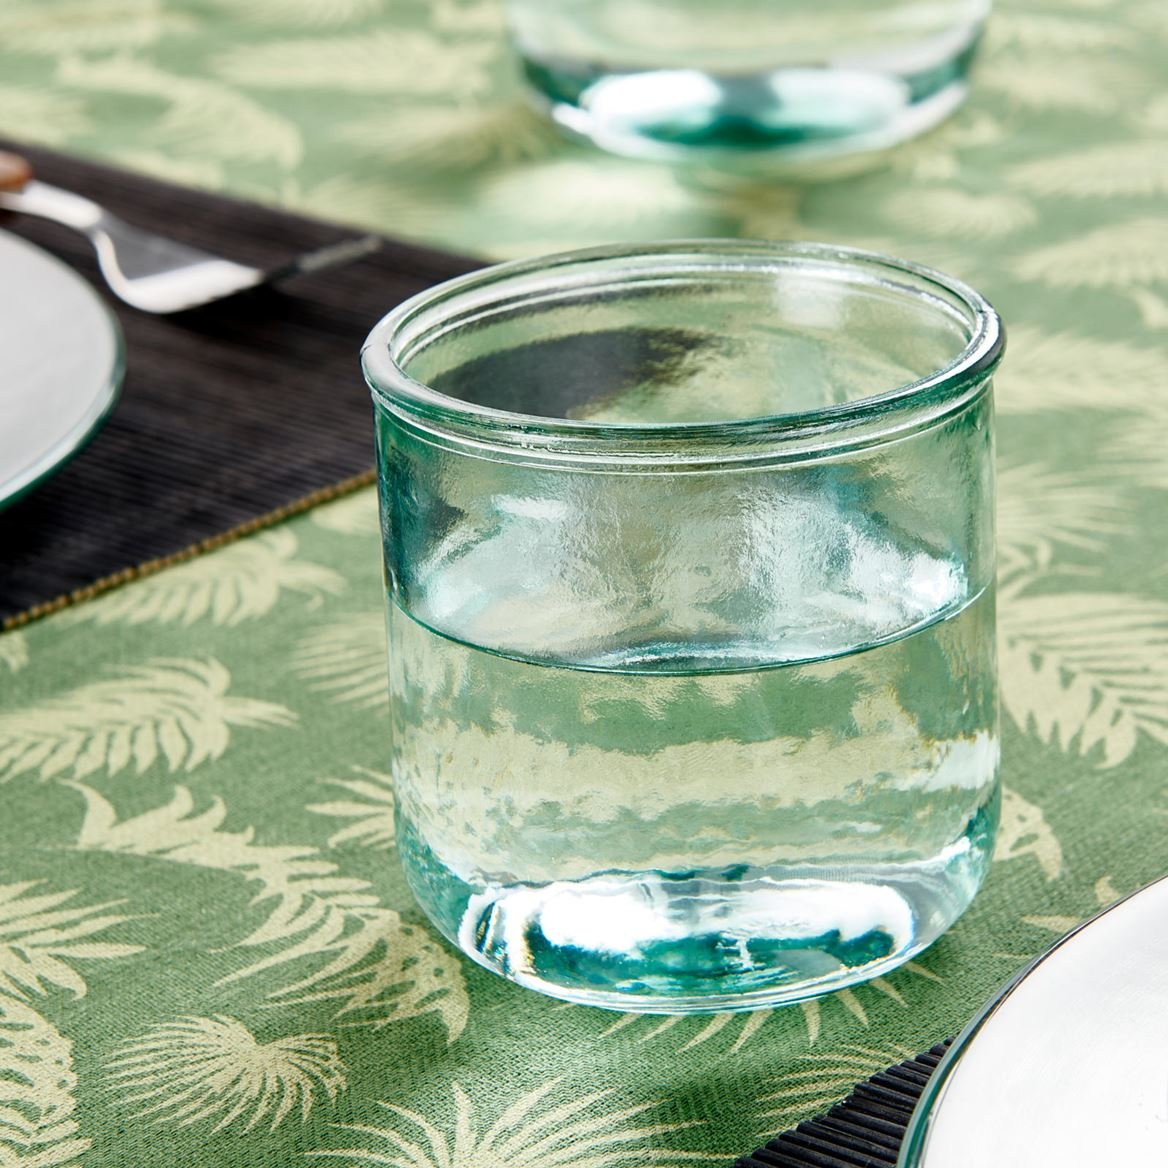 RECYCLE Glas transparant H 9 cm; Ø 9 cm_recycle-glas-transparant-h-9-cm;-ø-9-cm